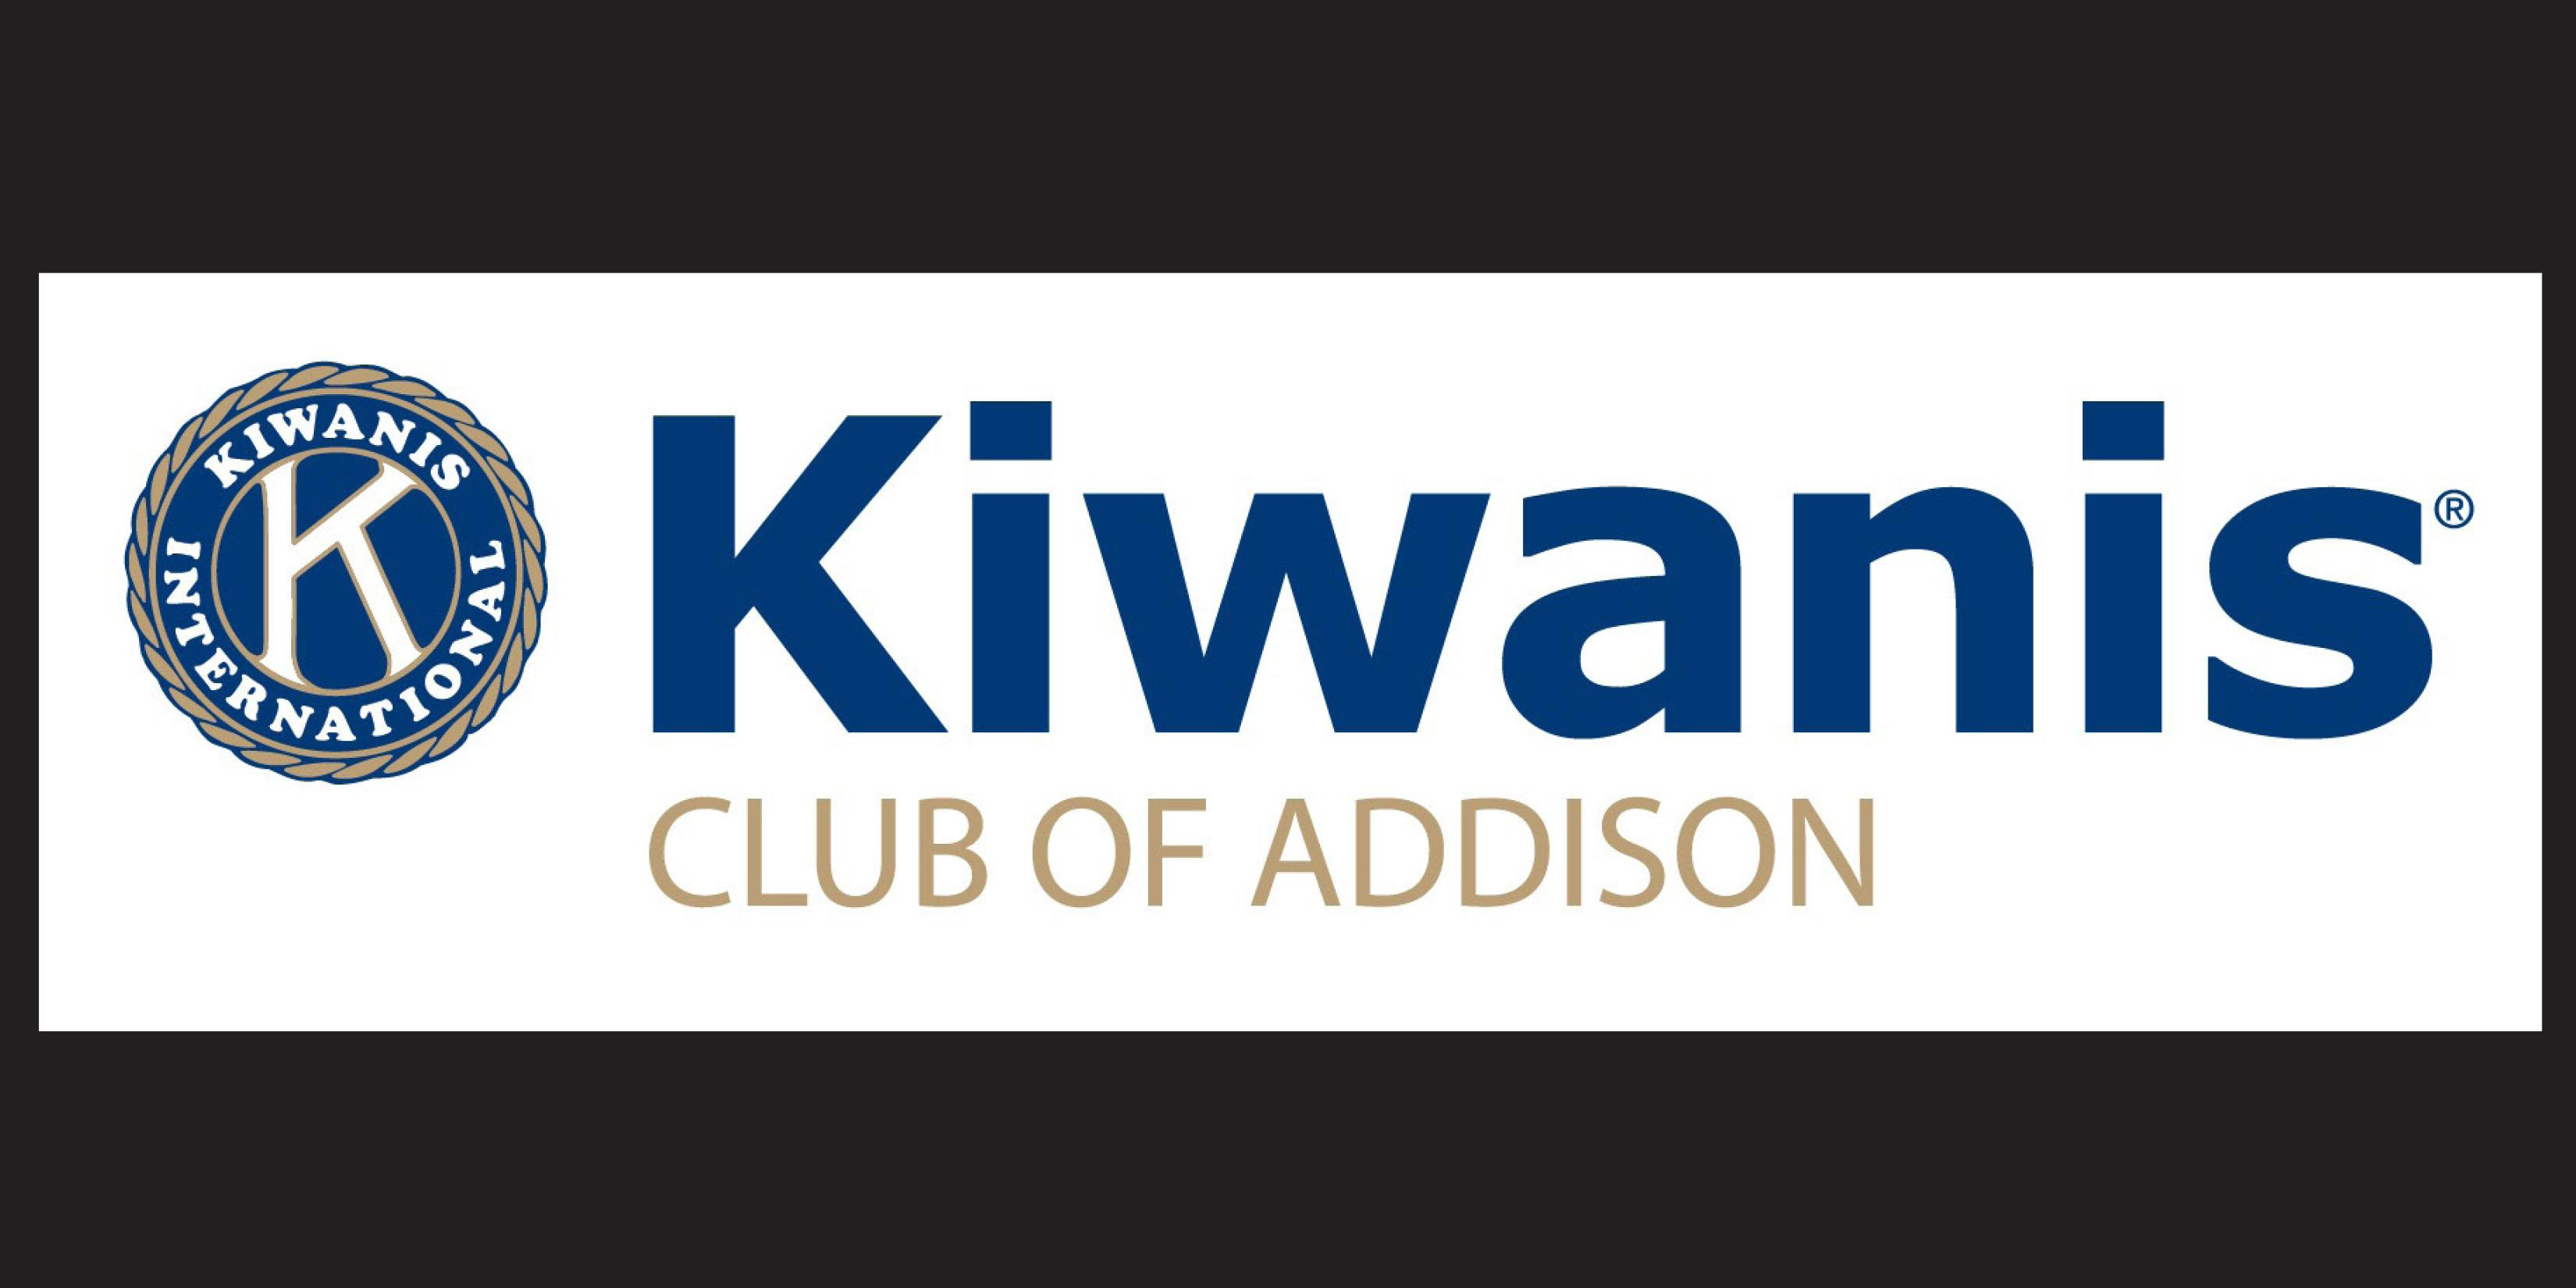 Upcoming Kiwanis Club of Addison events